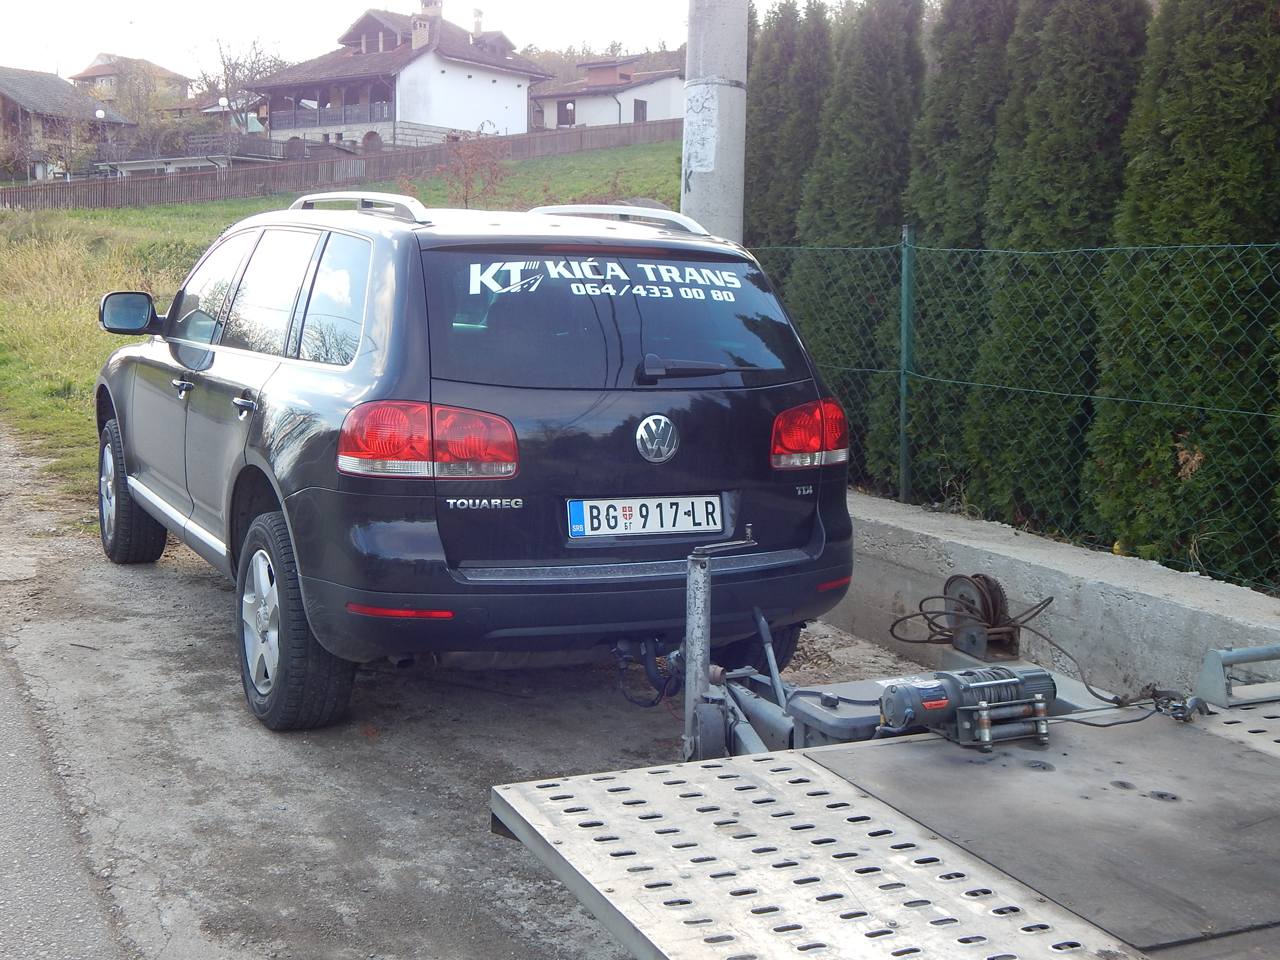 TOWING SERVICE KICA TRANS Towing services Mladenovac - Photo 3